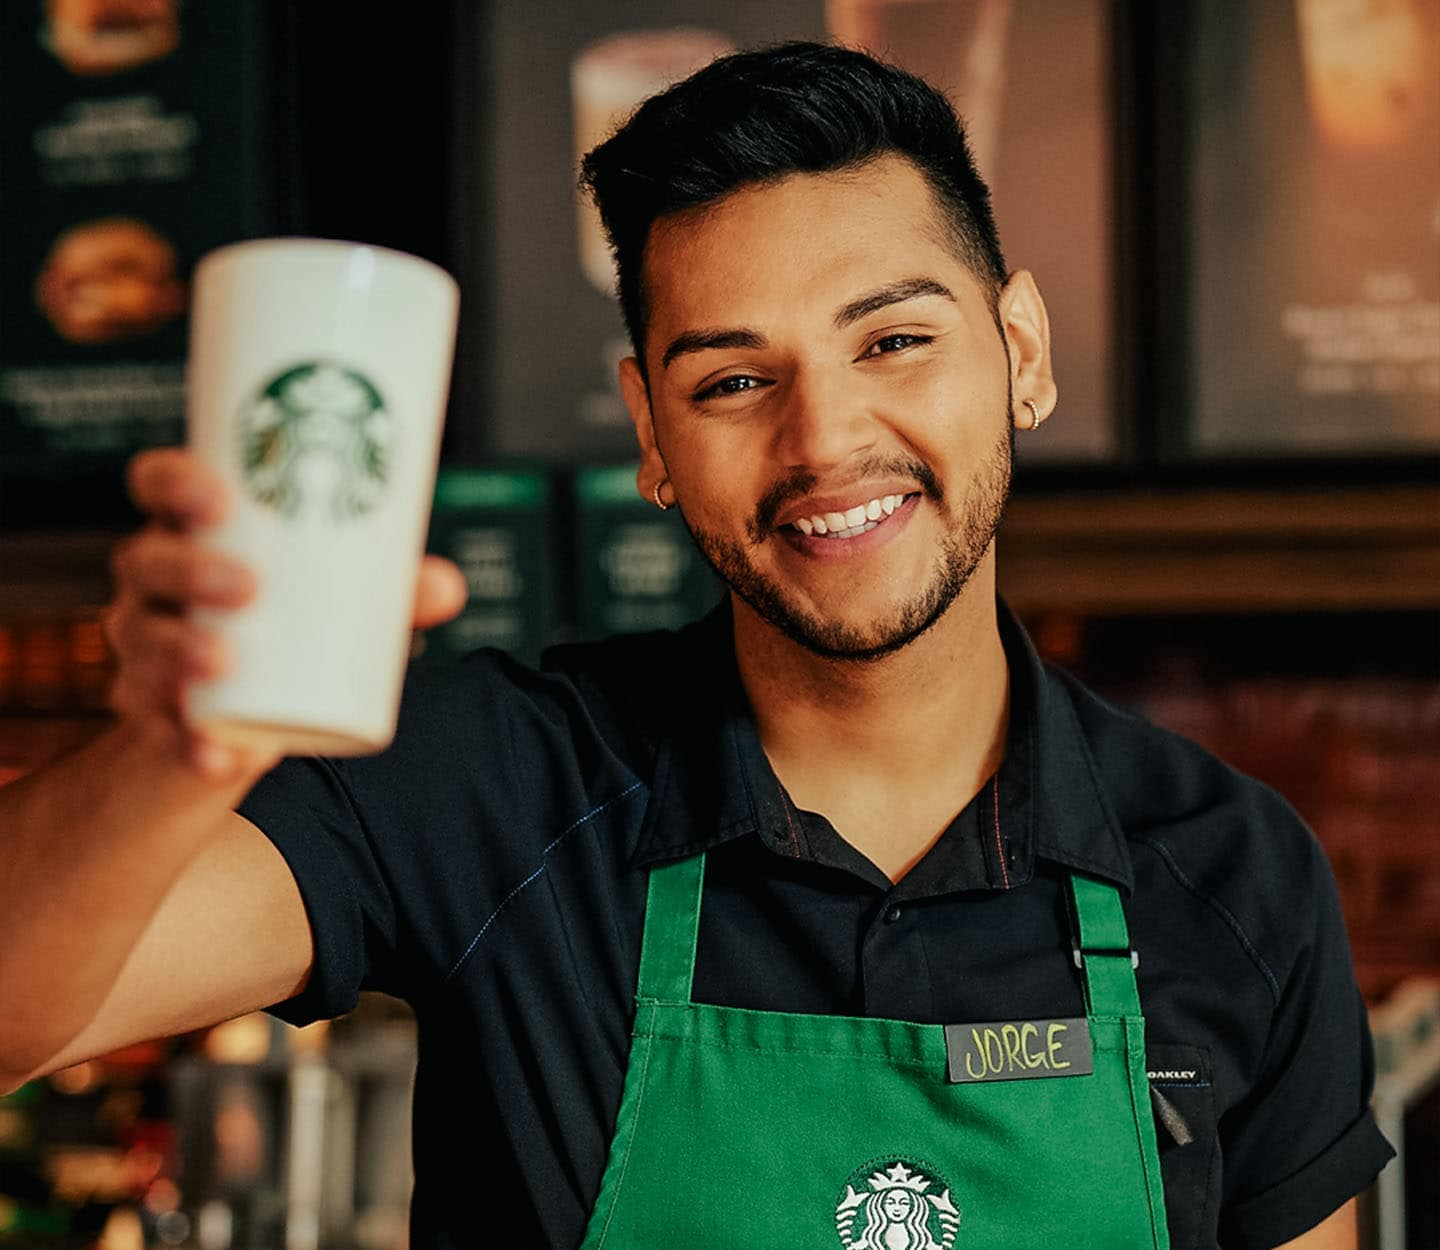 Starbucks barista in a green apron holds up a to-go cup while smiling at the camera.